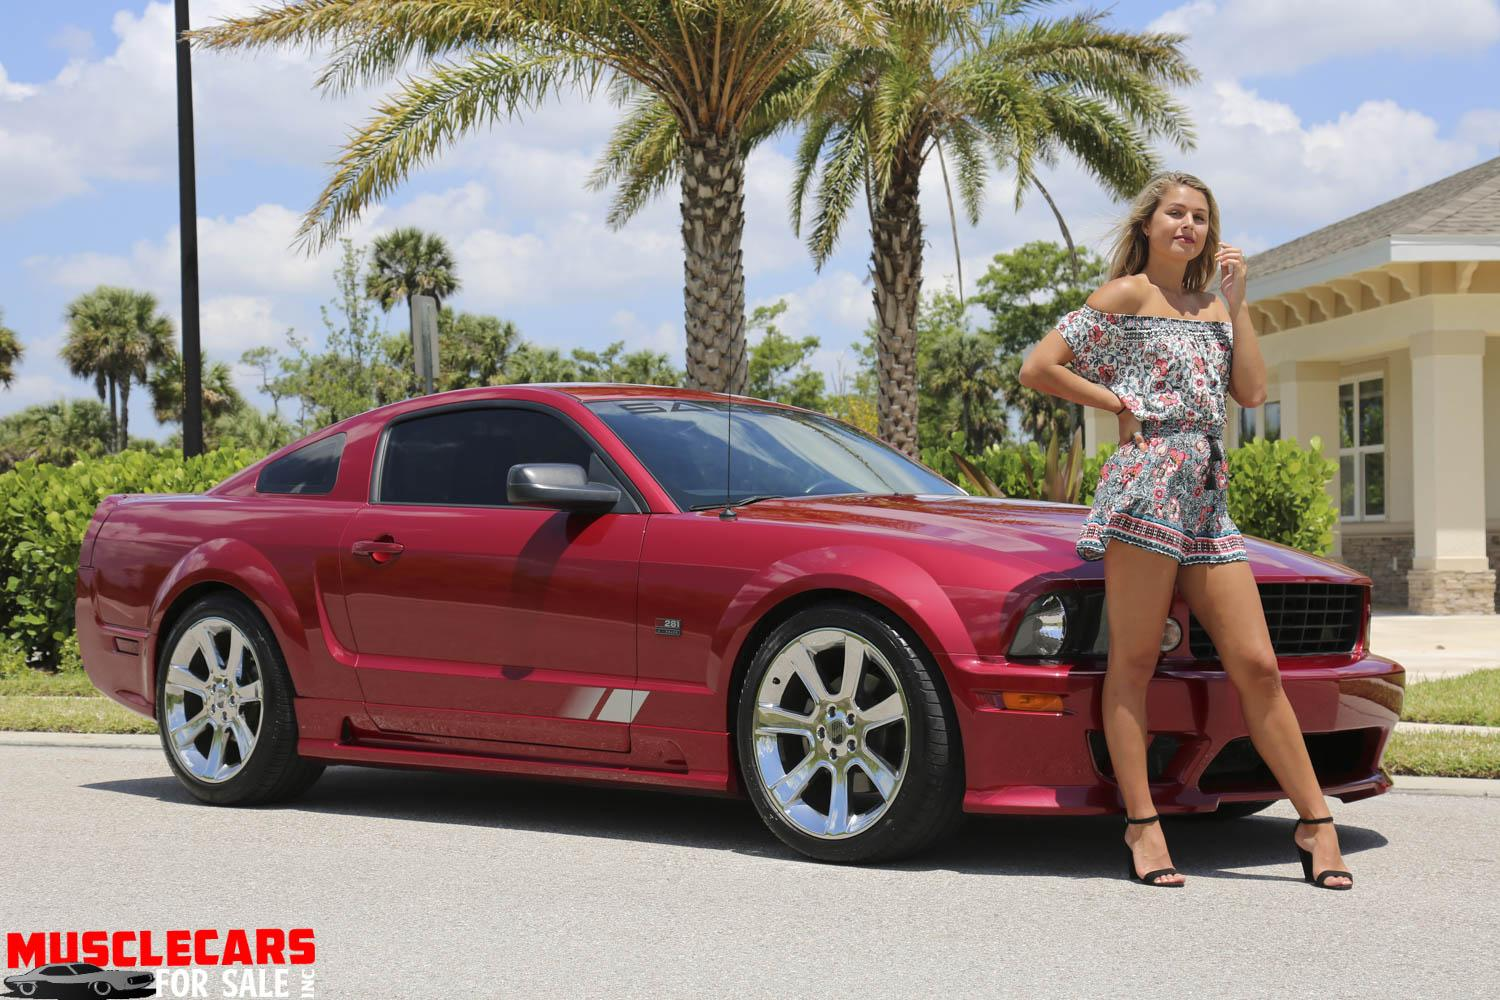 Used 2005 Ford Mustang Saleen Saleen for sale Sold at Muscle Cars for Sale Inc. in Fort Myers FL 33912 1